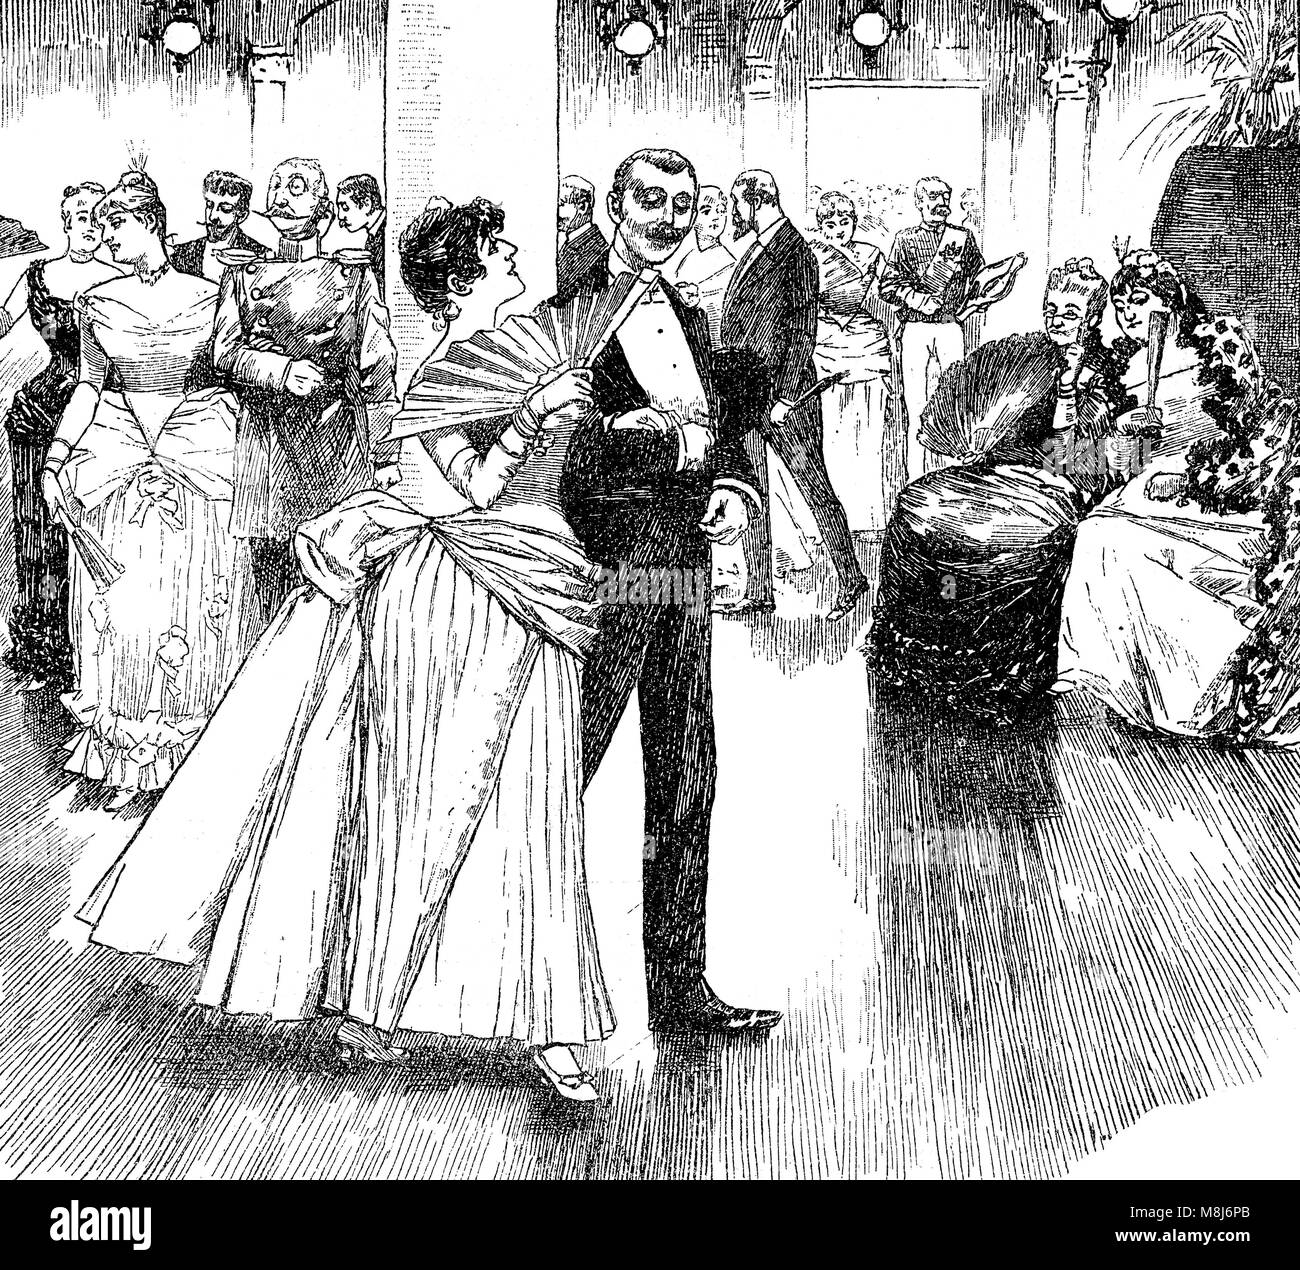 Gentleman flirts with young woman at the ball white two old spinsters look at them with great interest, vintage - Stock Image